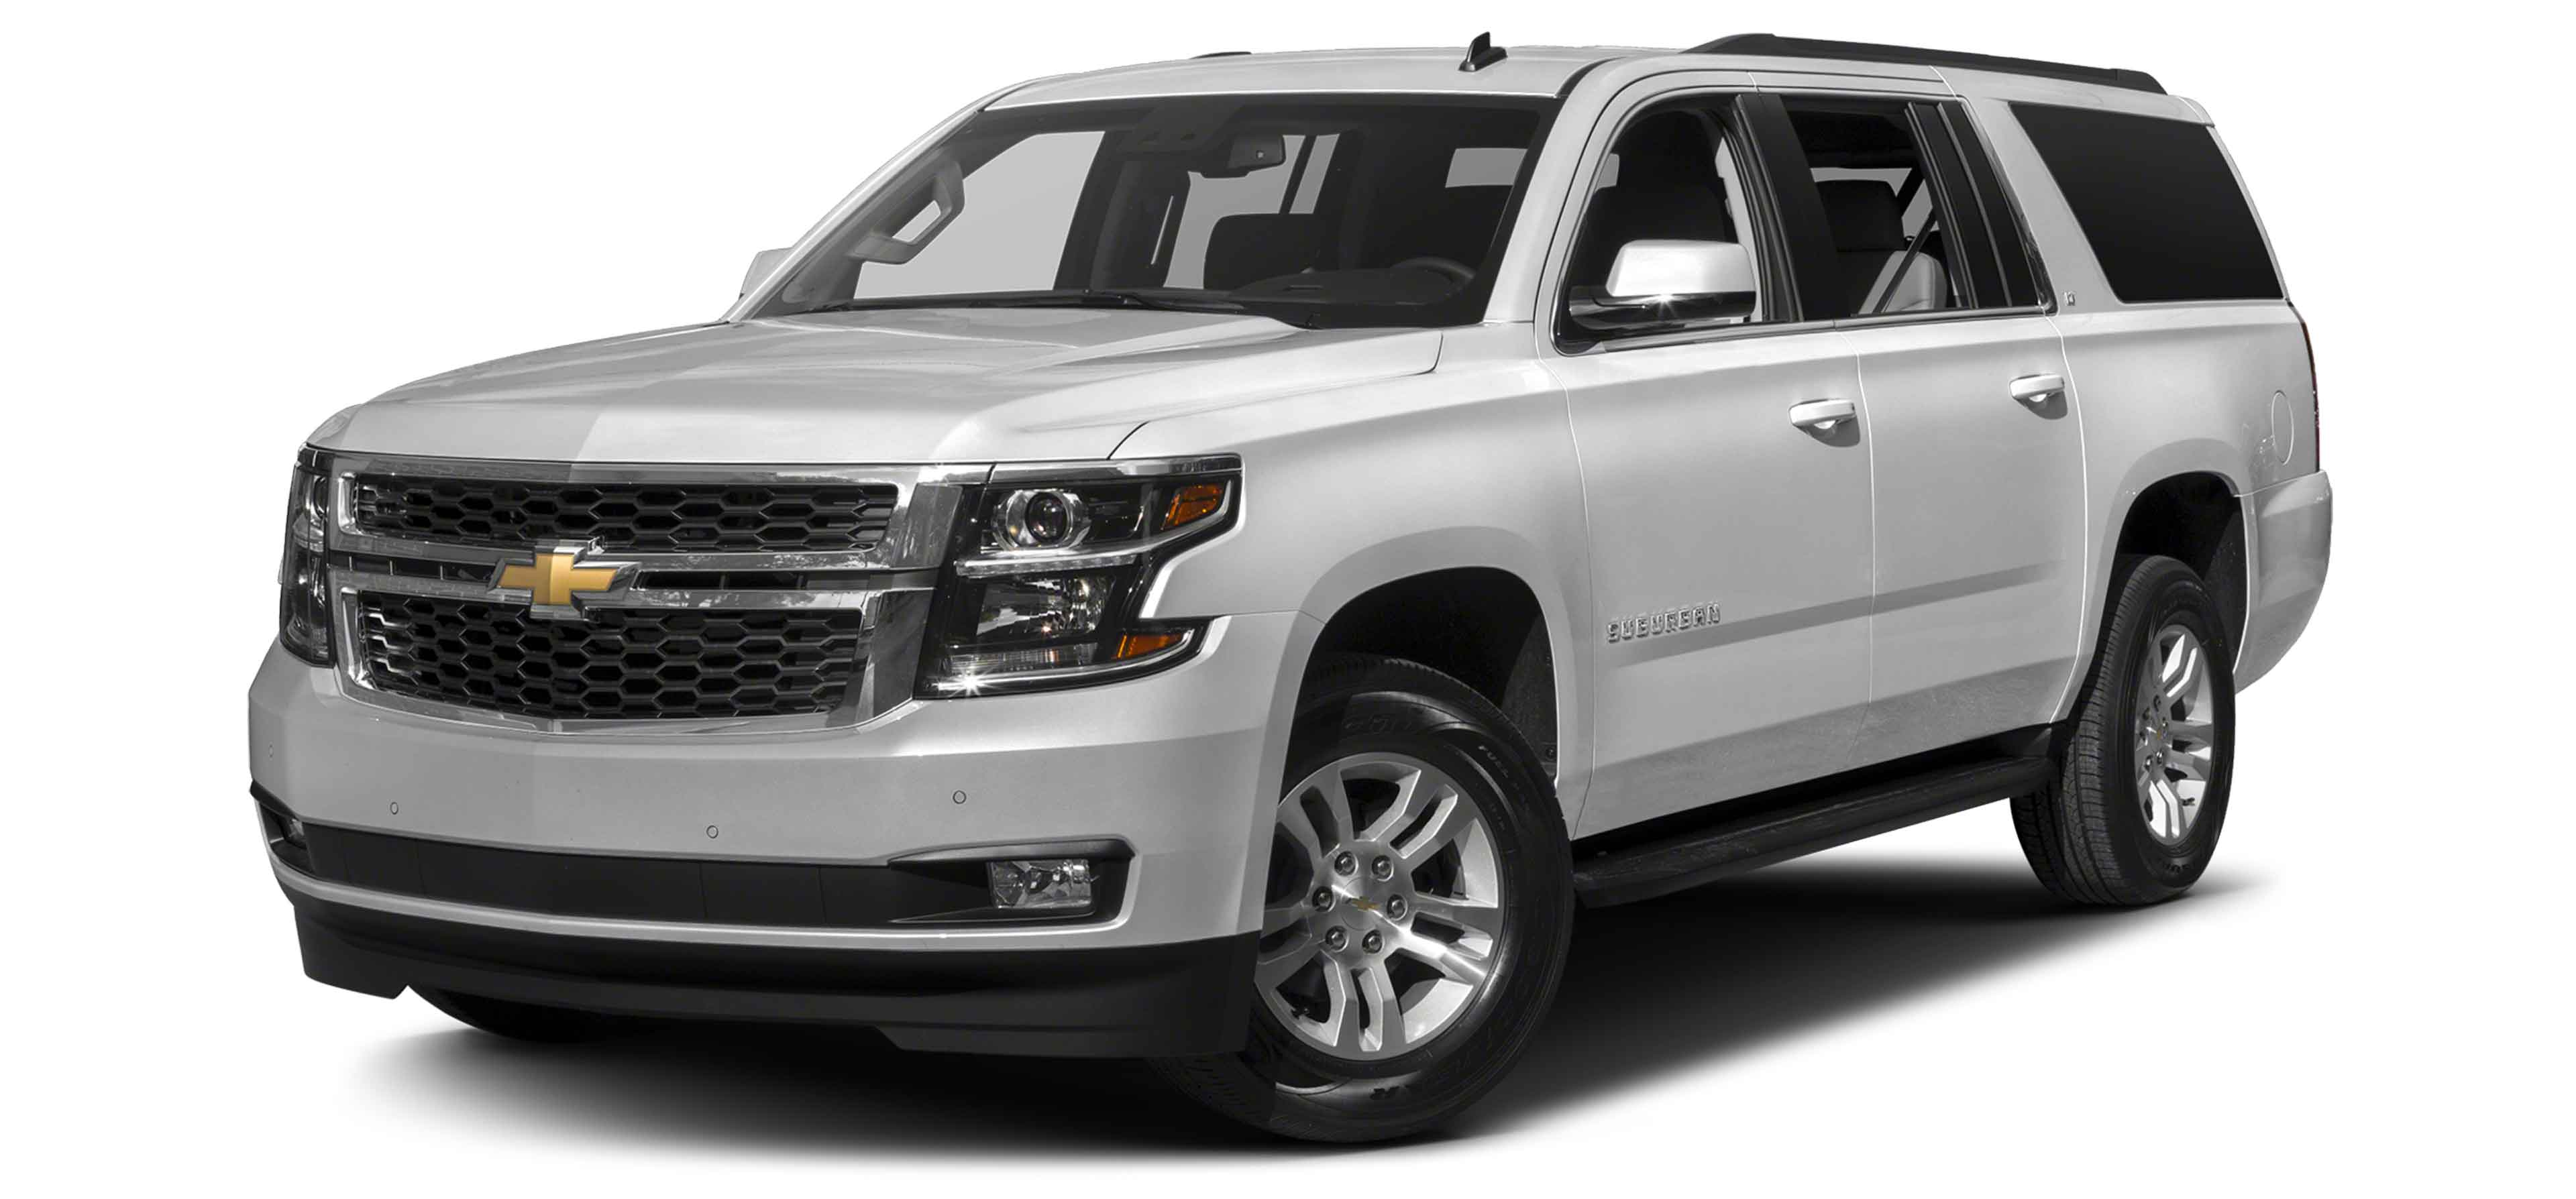 search chevrolet suburban dealer seattle chevrolet suburban renton. Black Bedroom Furniture Sets. Home Design Ideas